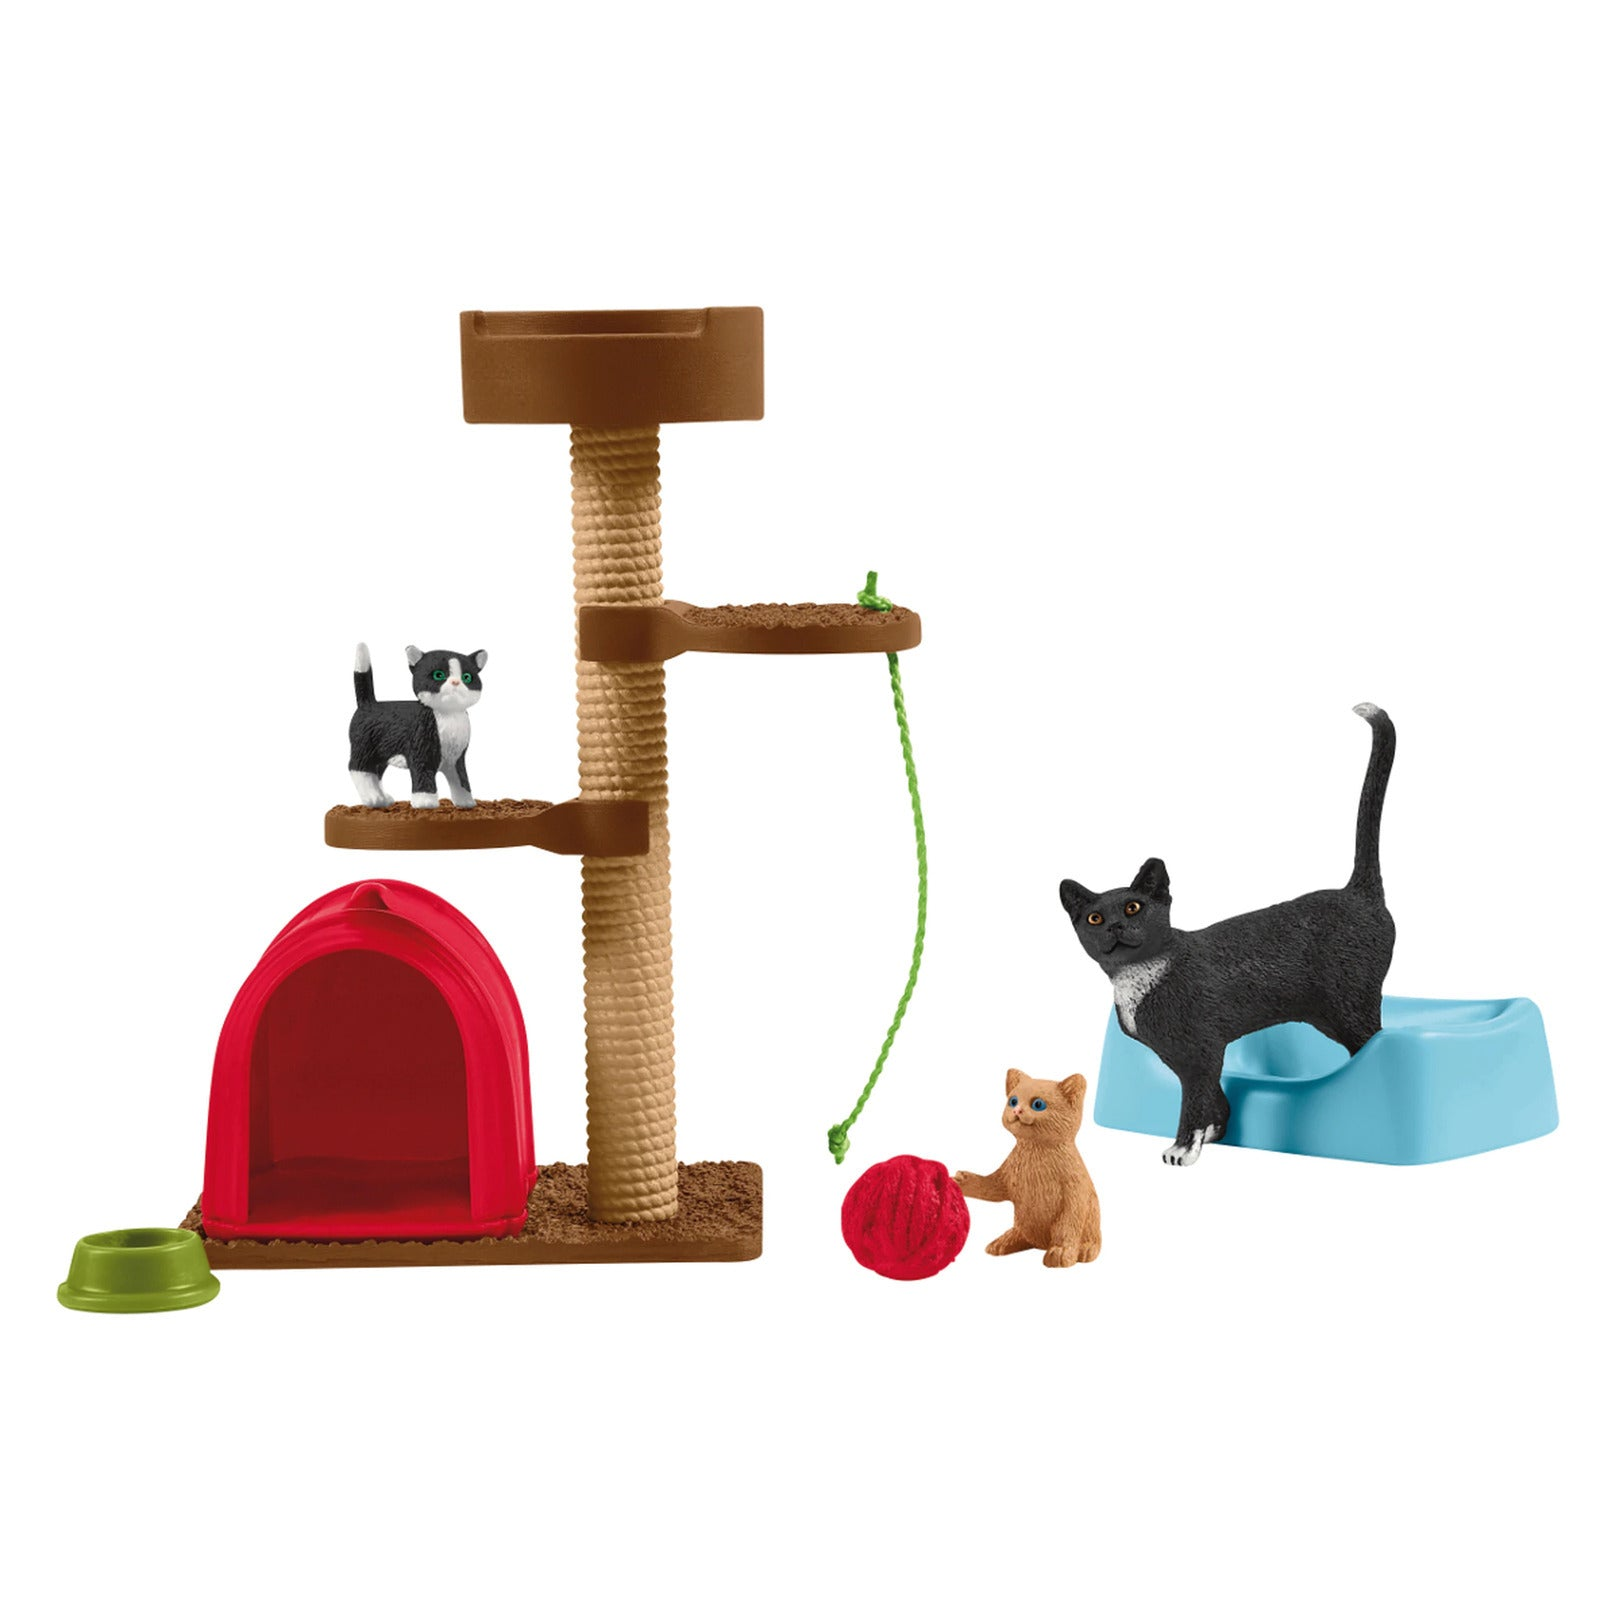 Schleich 42501 Playtime for Cute Cats